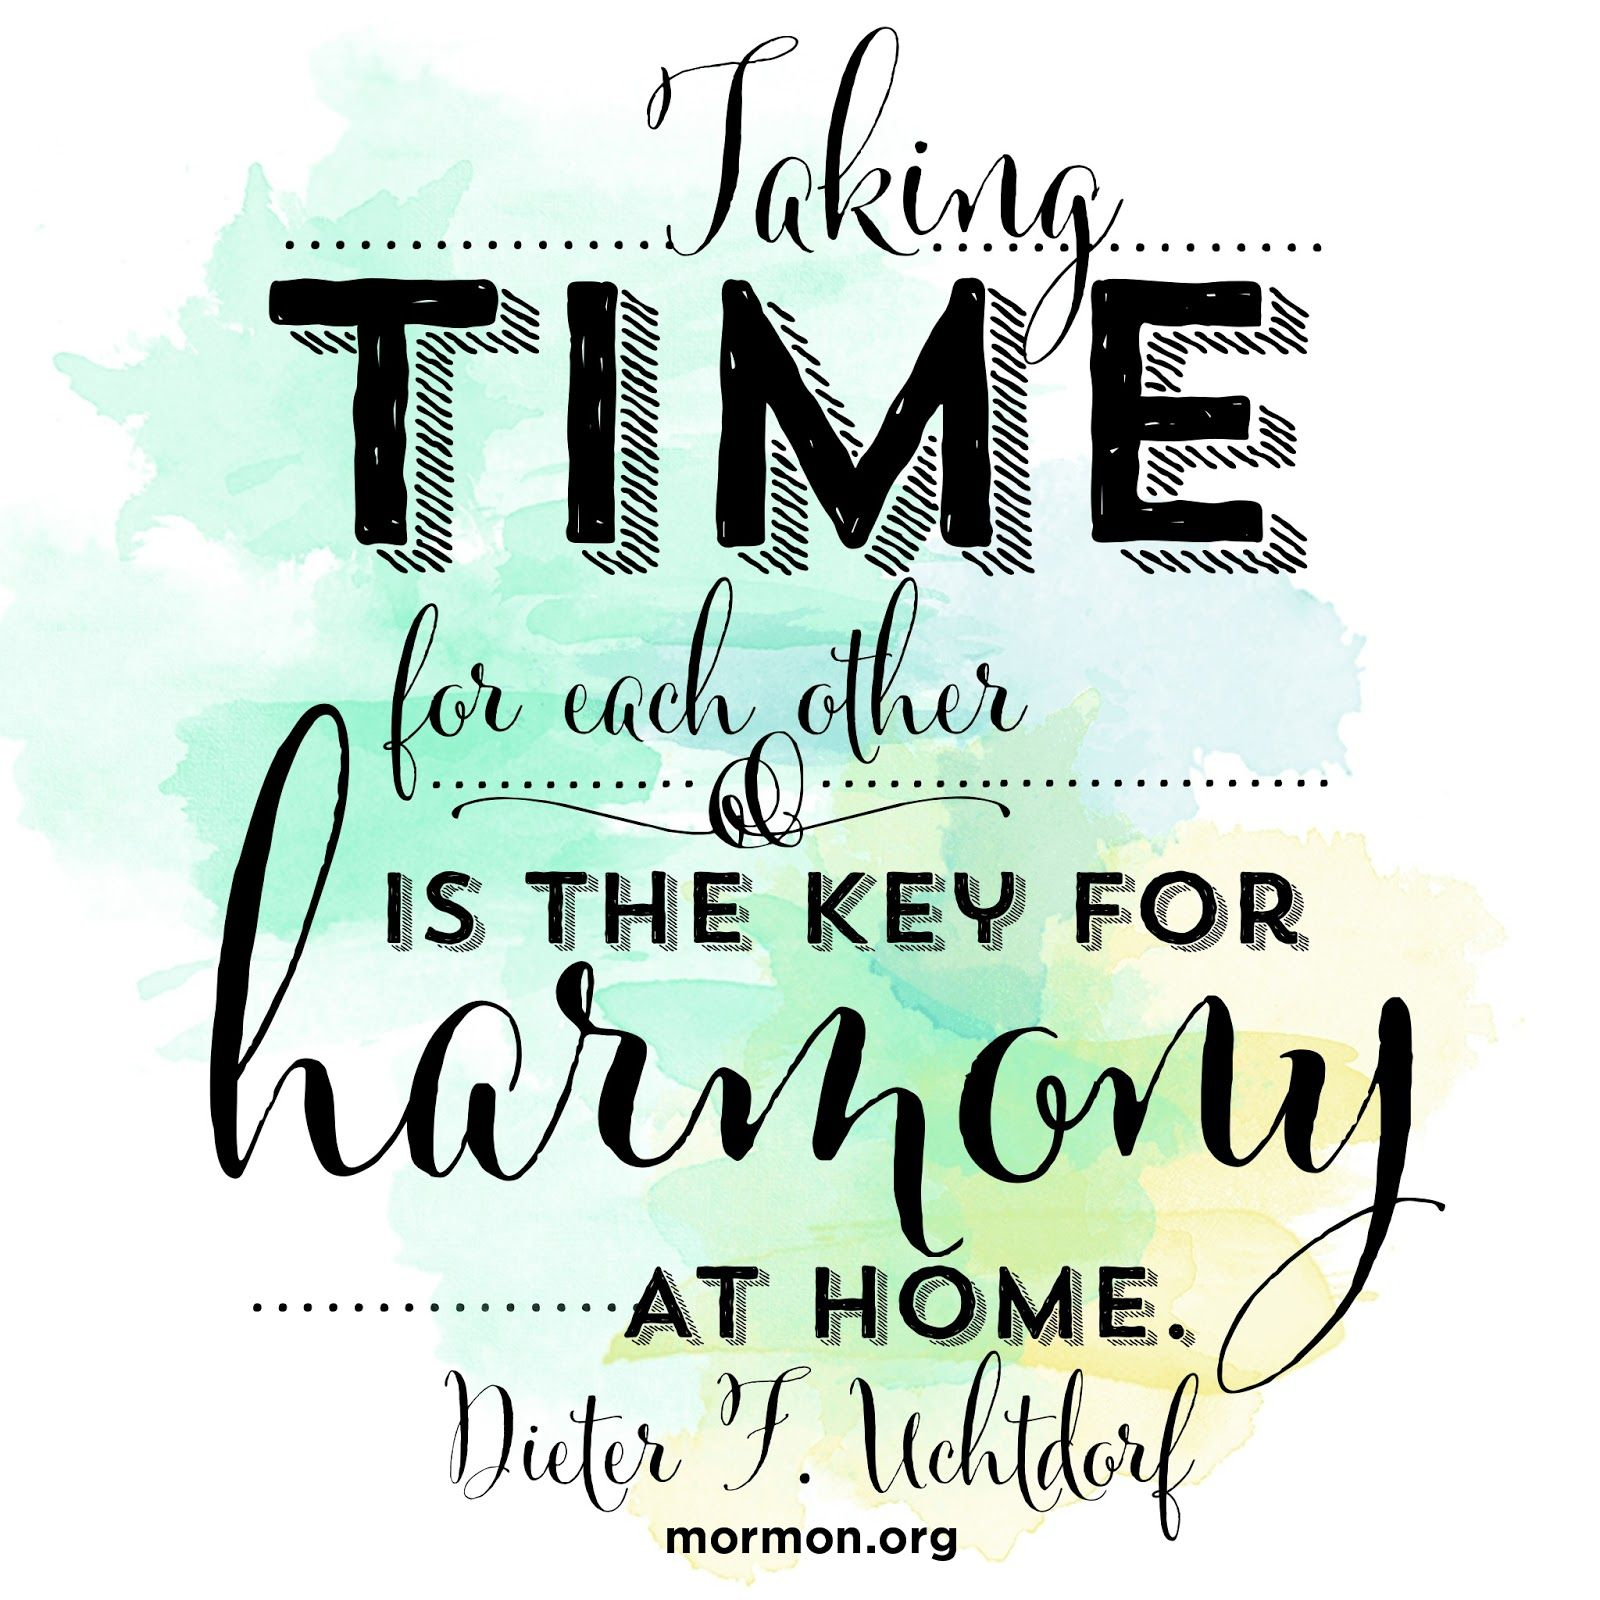 Lds Quotes On Family Home Evening: Rhonna DESIGNS: Taking Time For Each Other Is The Key For